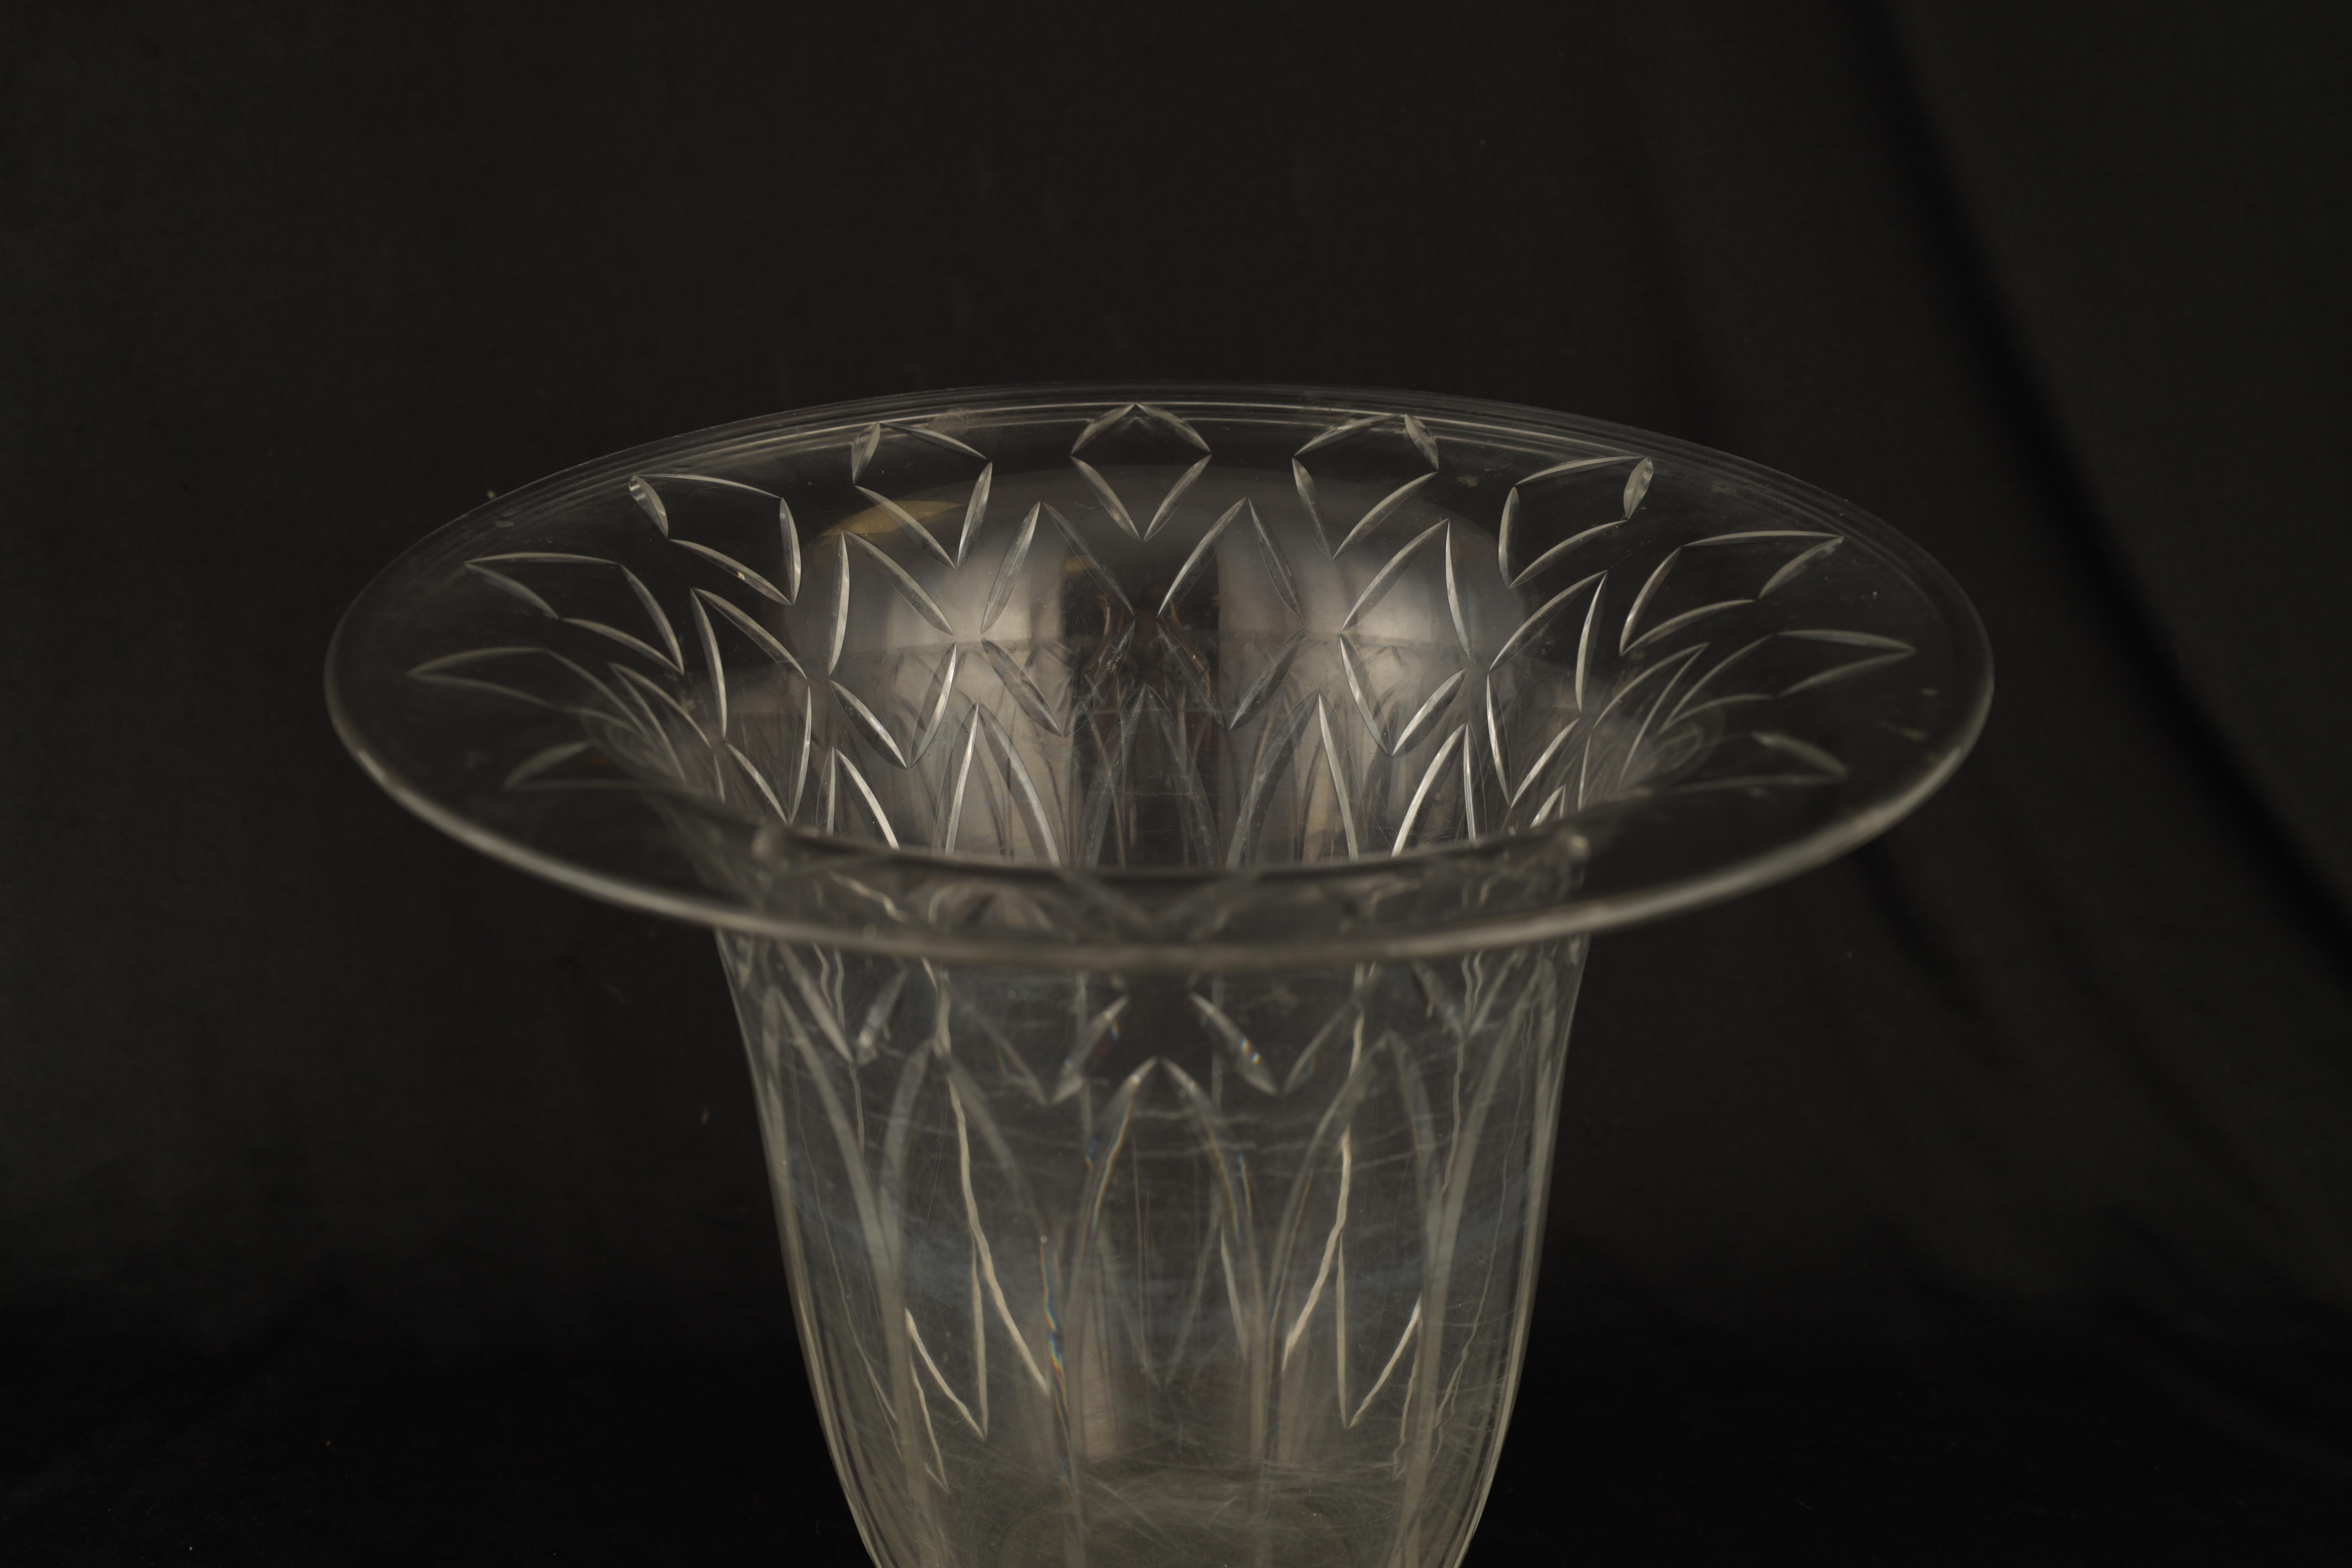 AN EARLY 20TH CENTURY BACCARAT CLEAR GLASS VASE having flared rim and wheel cut petal and diamond - Image 2 of 6